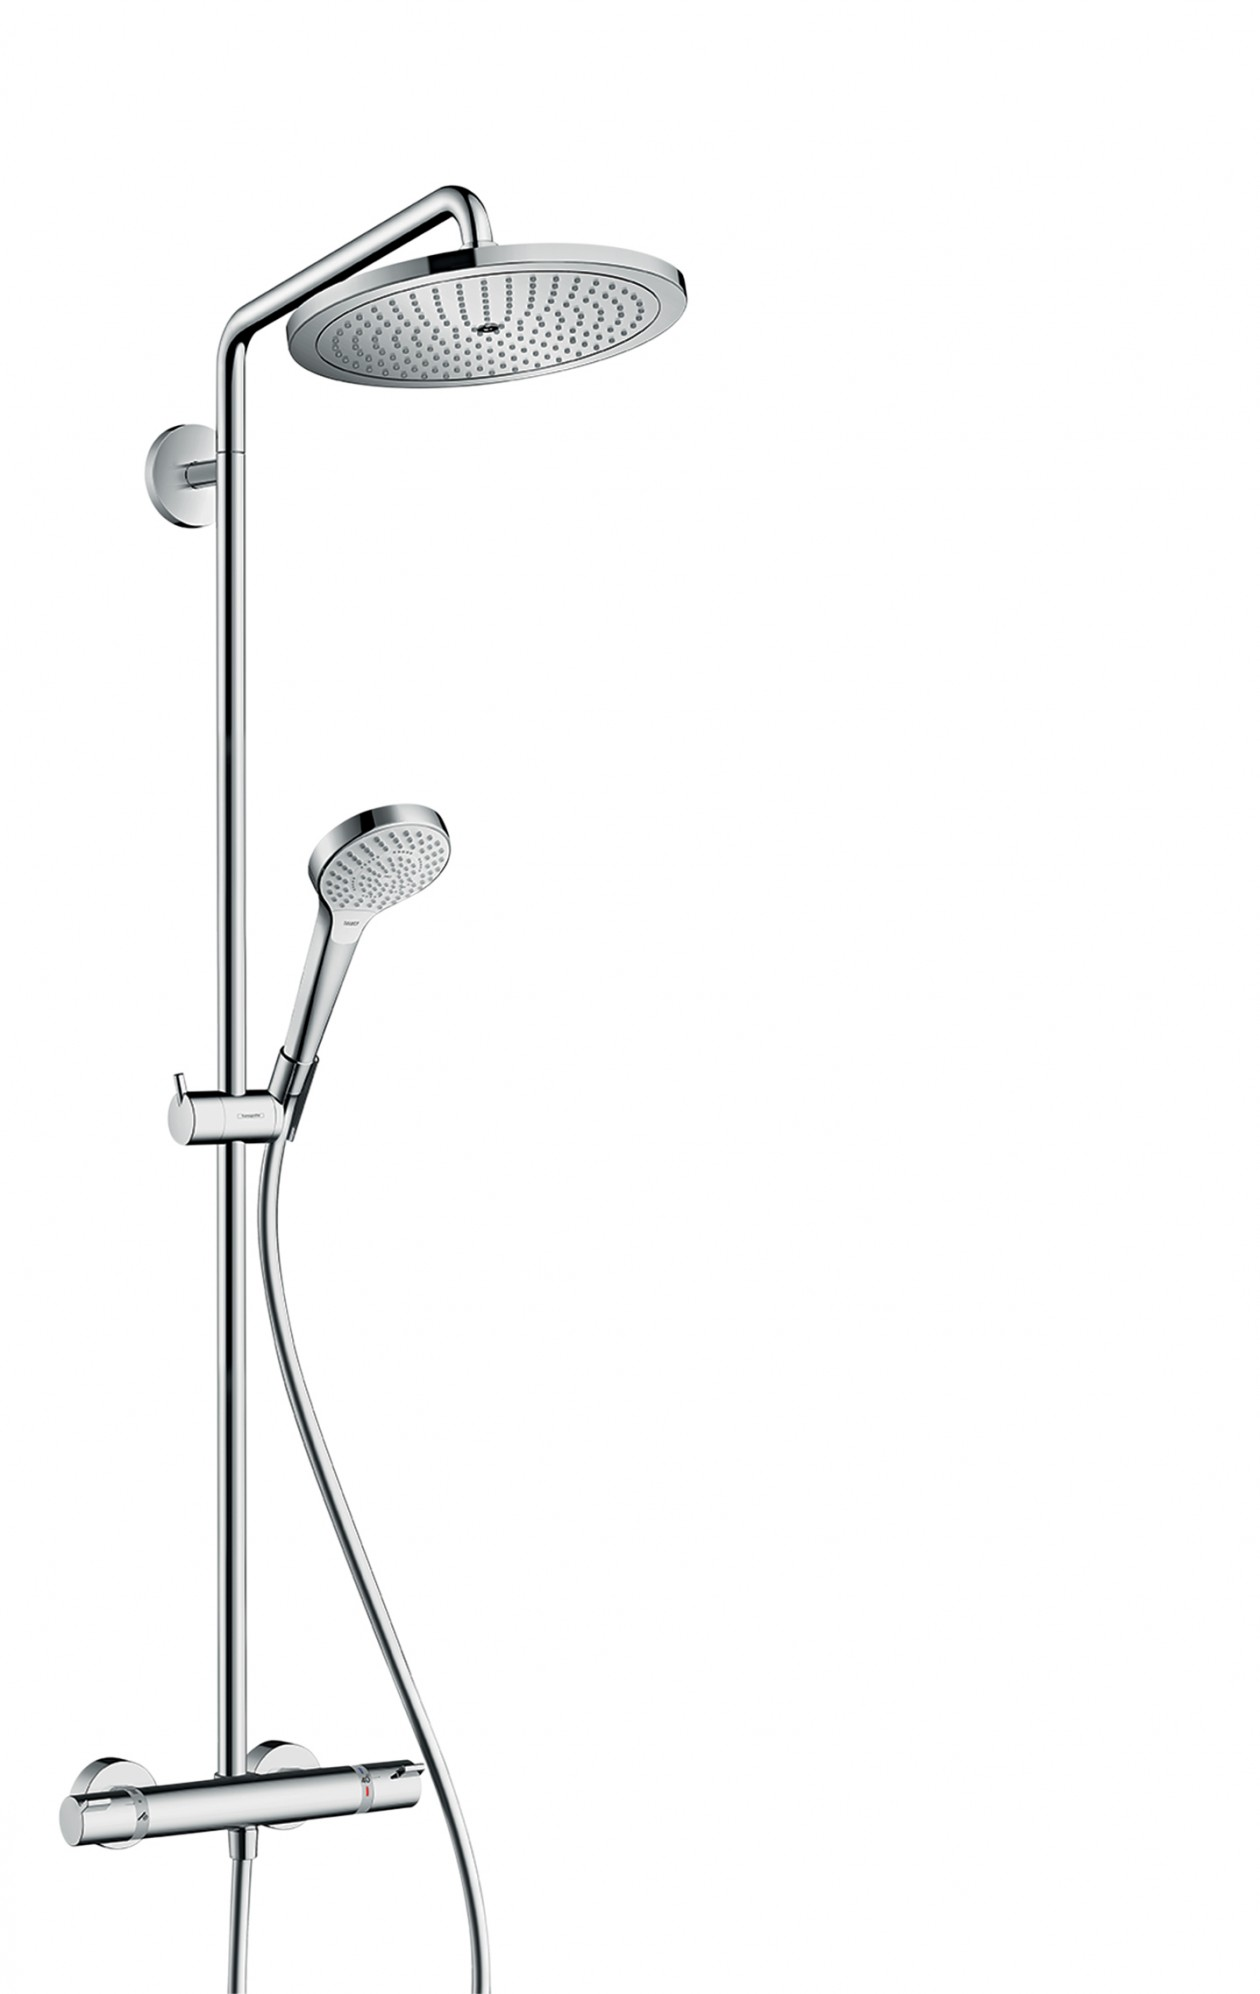 w3_Hansgrohe_Croma_Select_S_280_Showerpipe.jpg